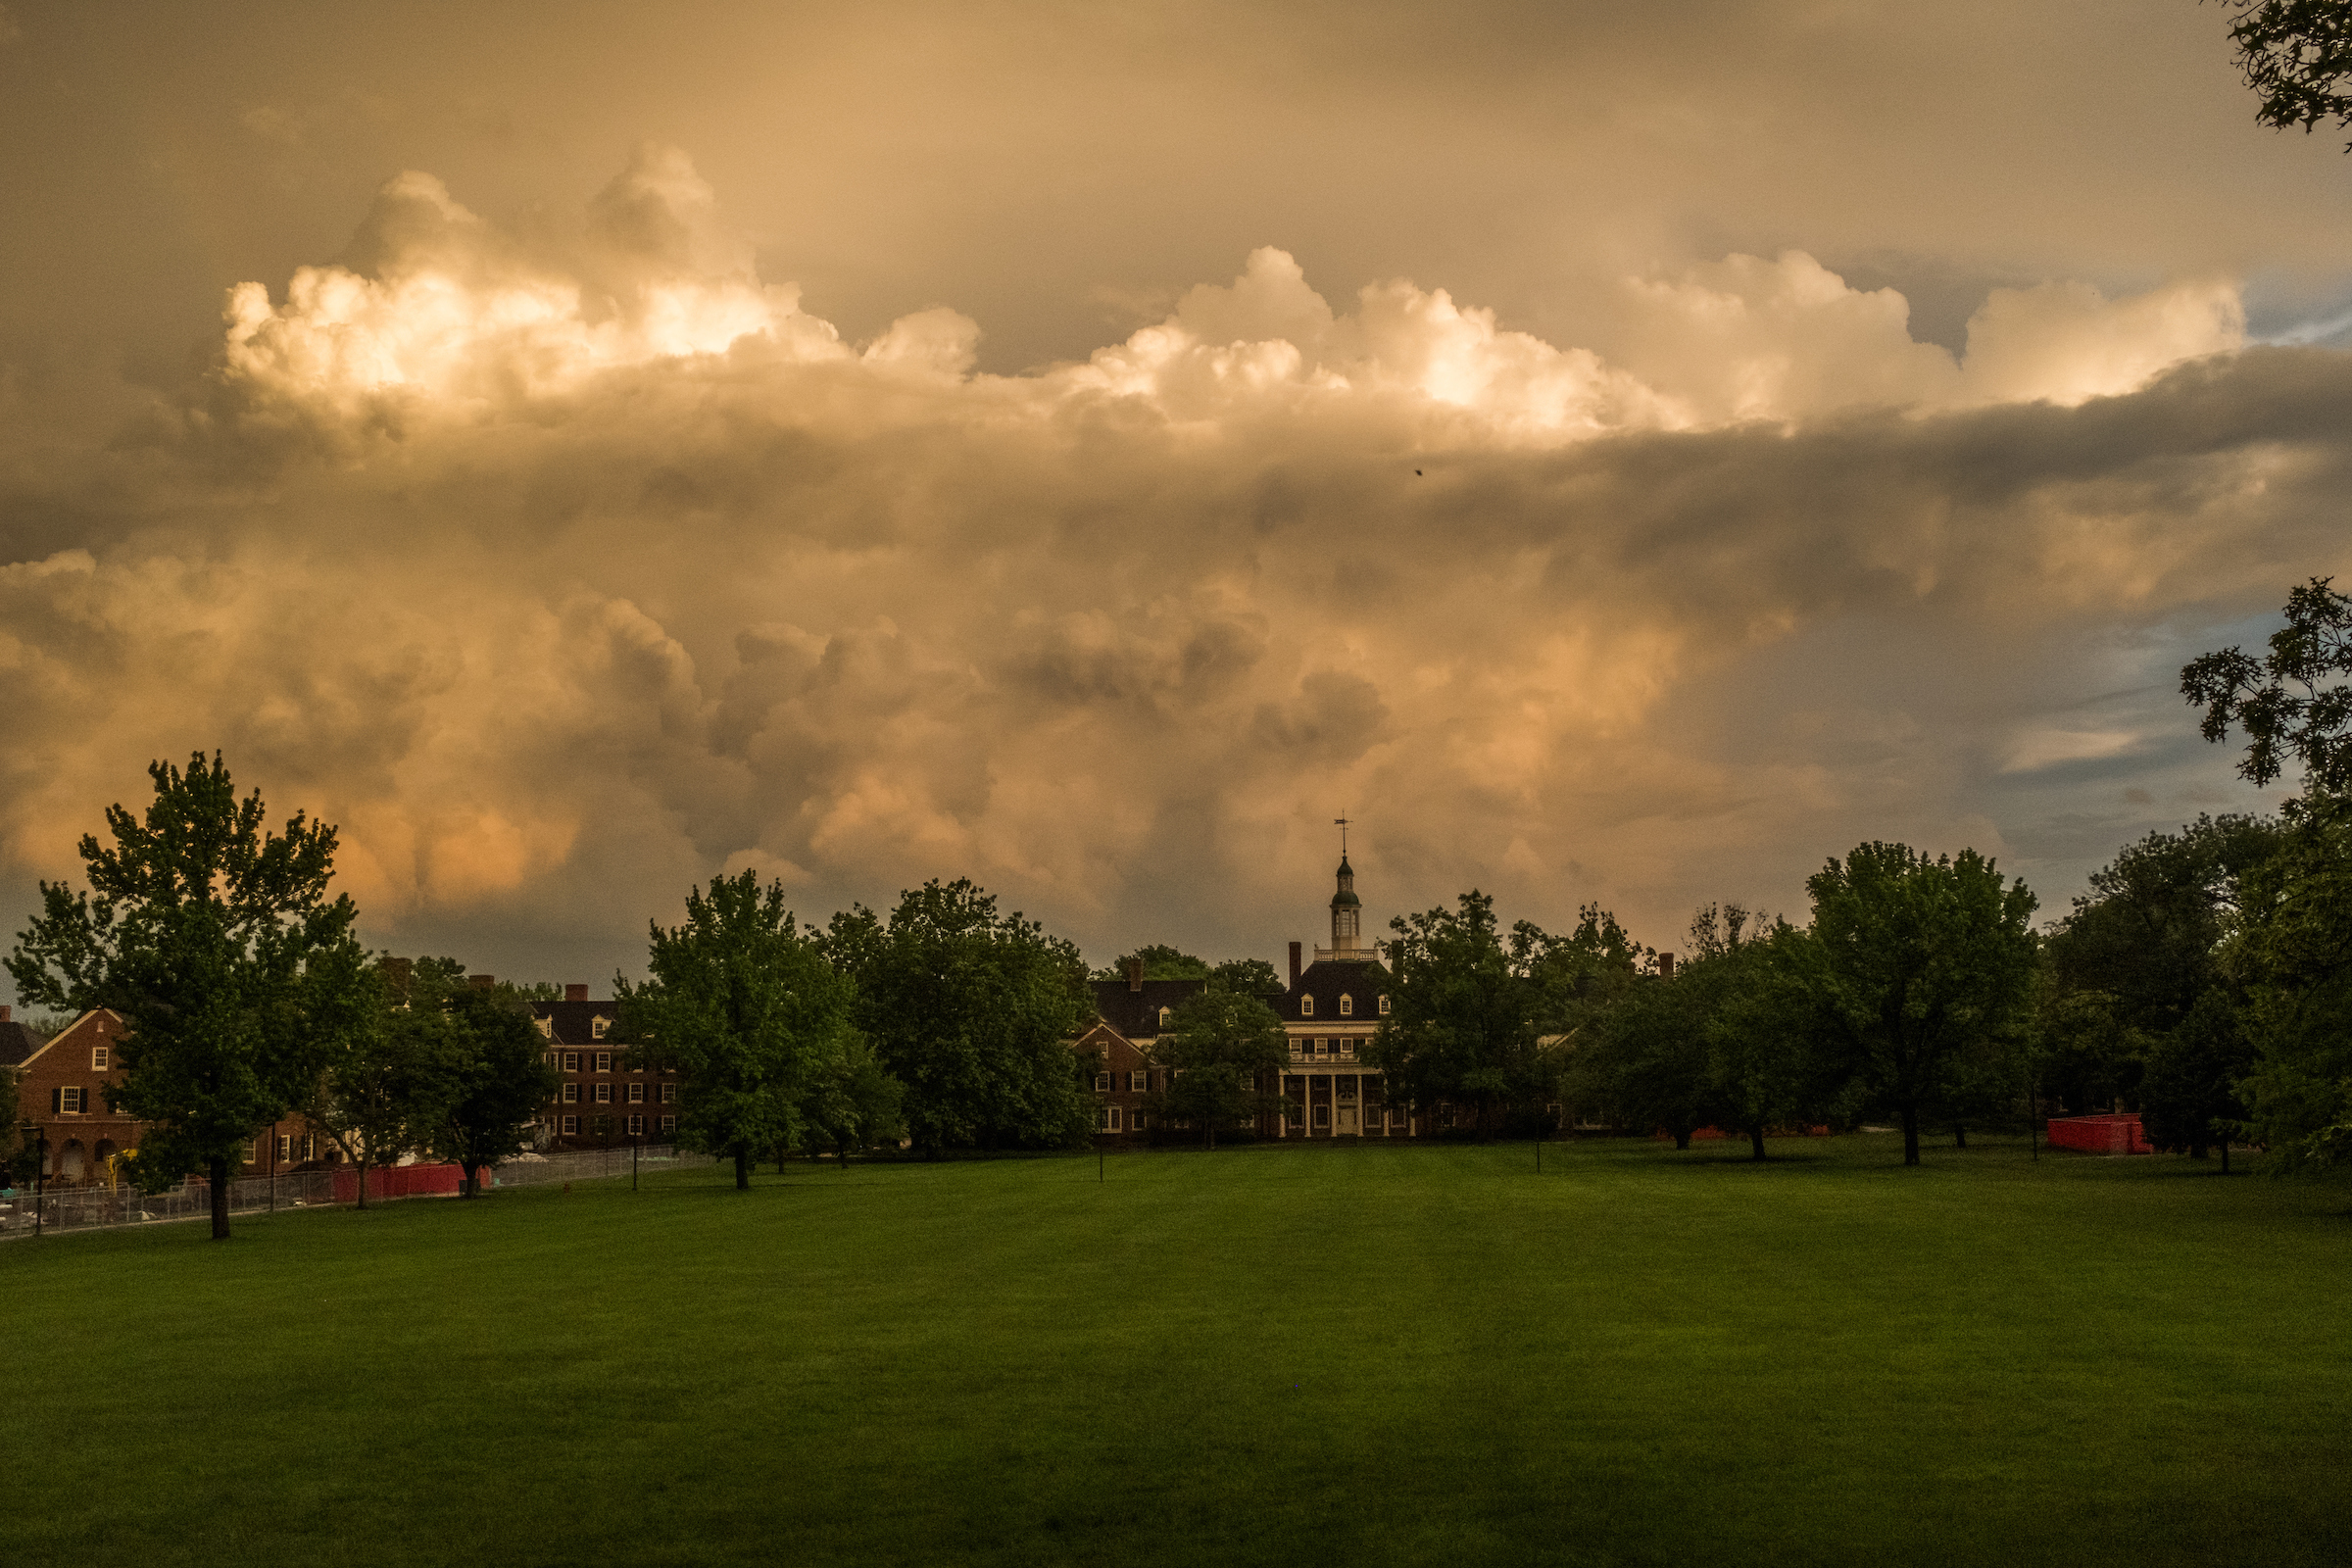 Miami University campus at dusk